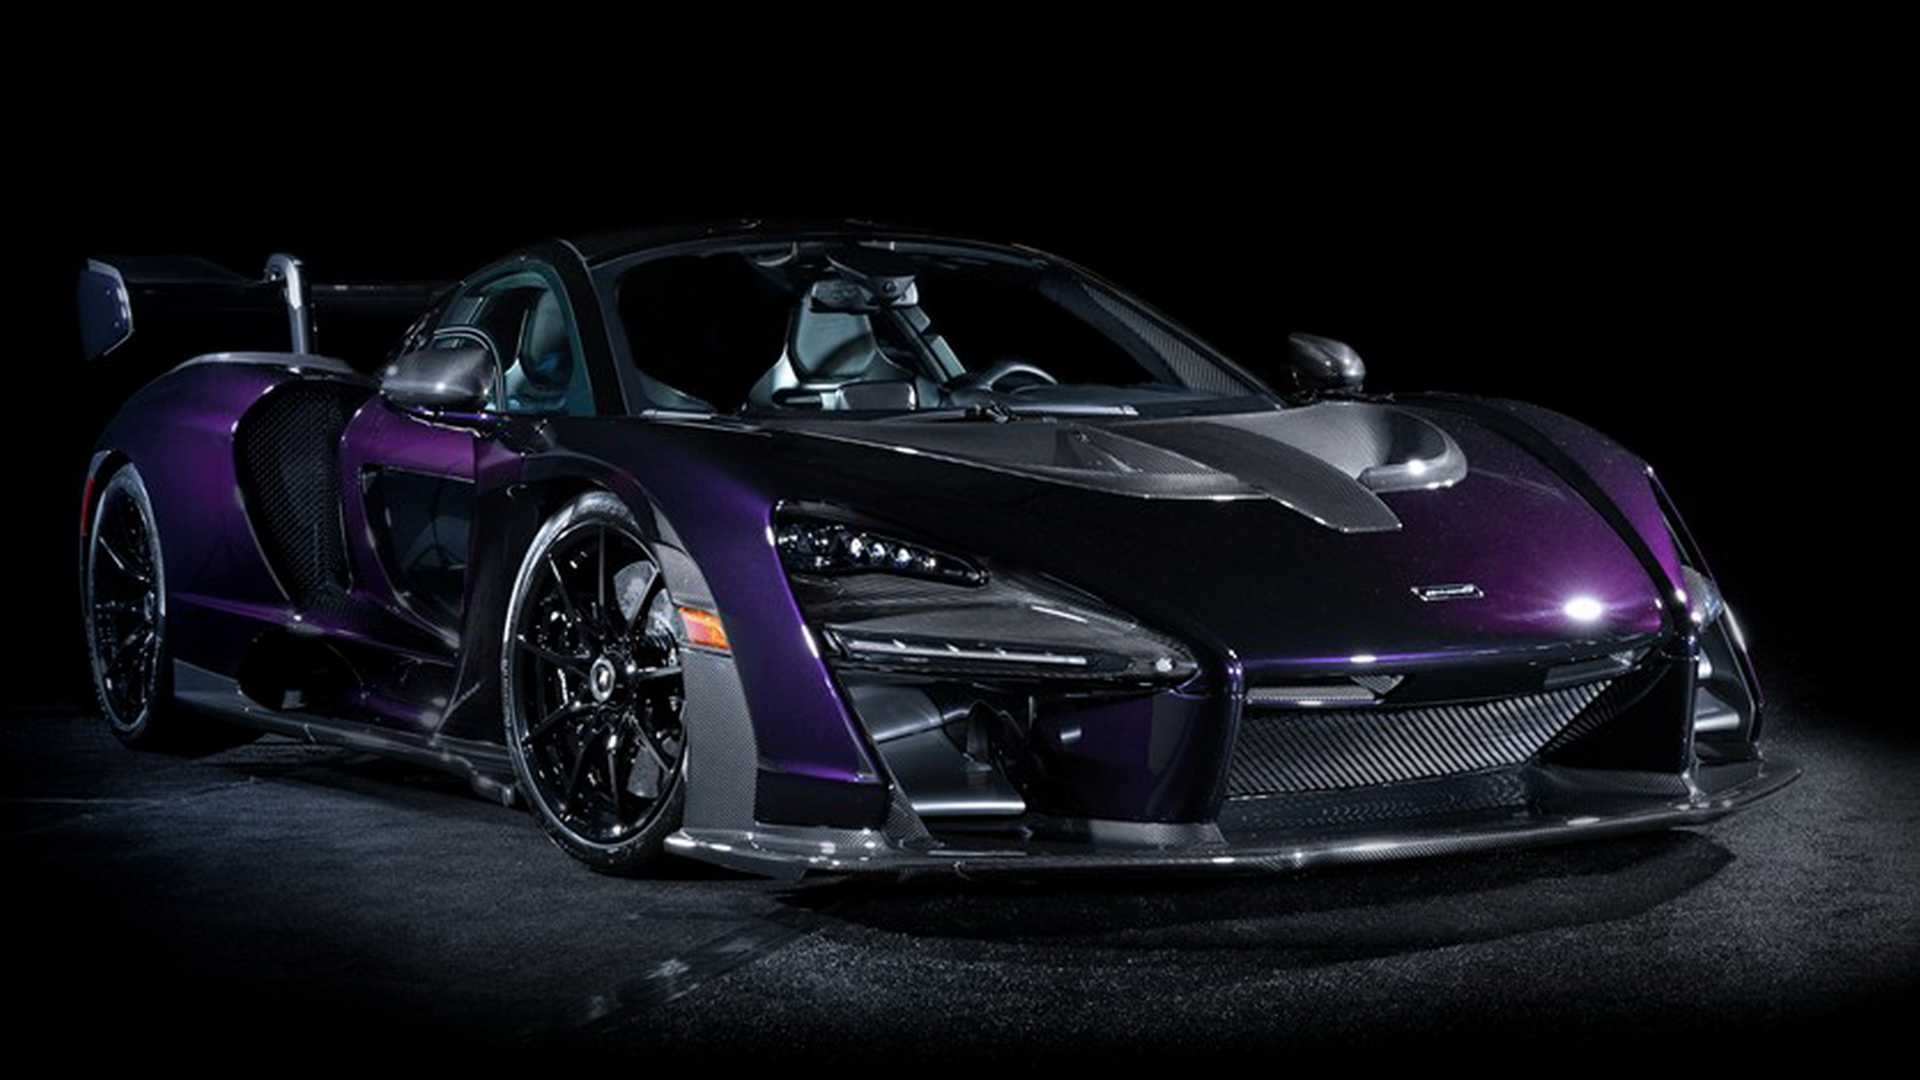 2019-mclaren-senna-heading-to-auction (1)